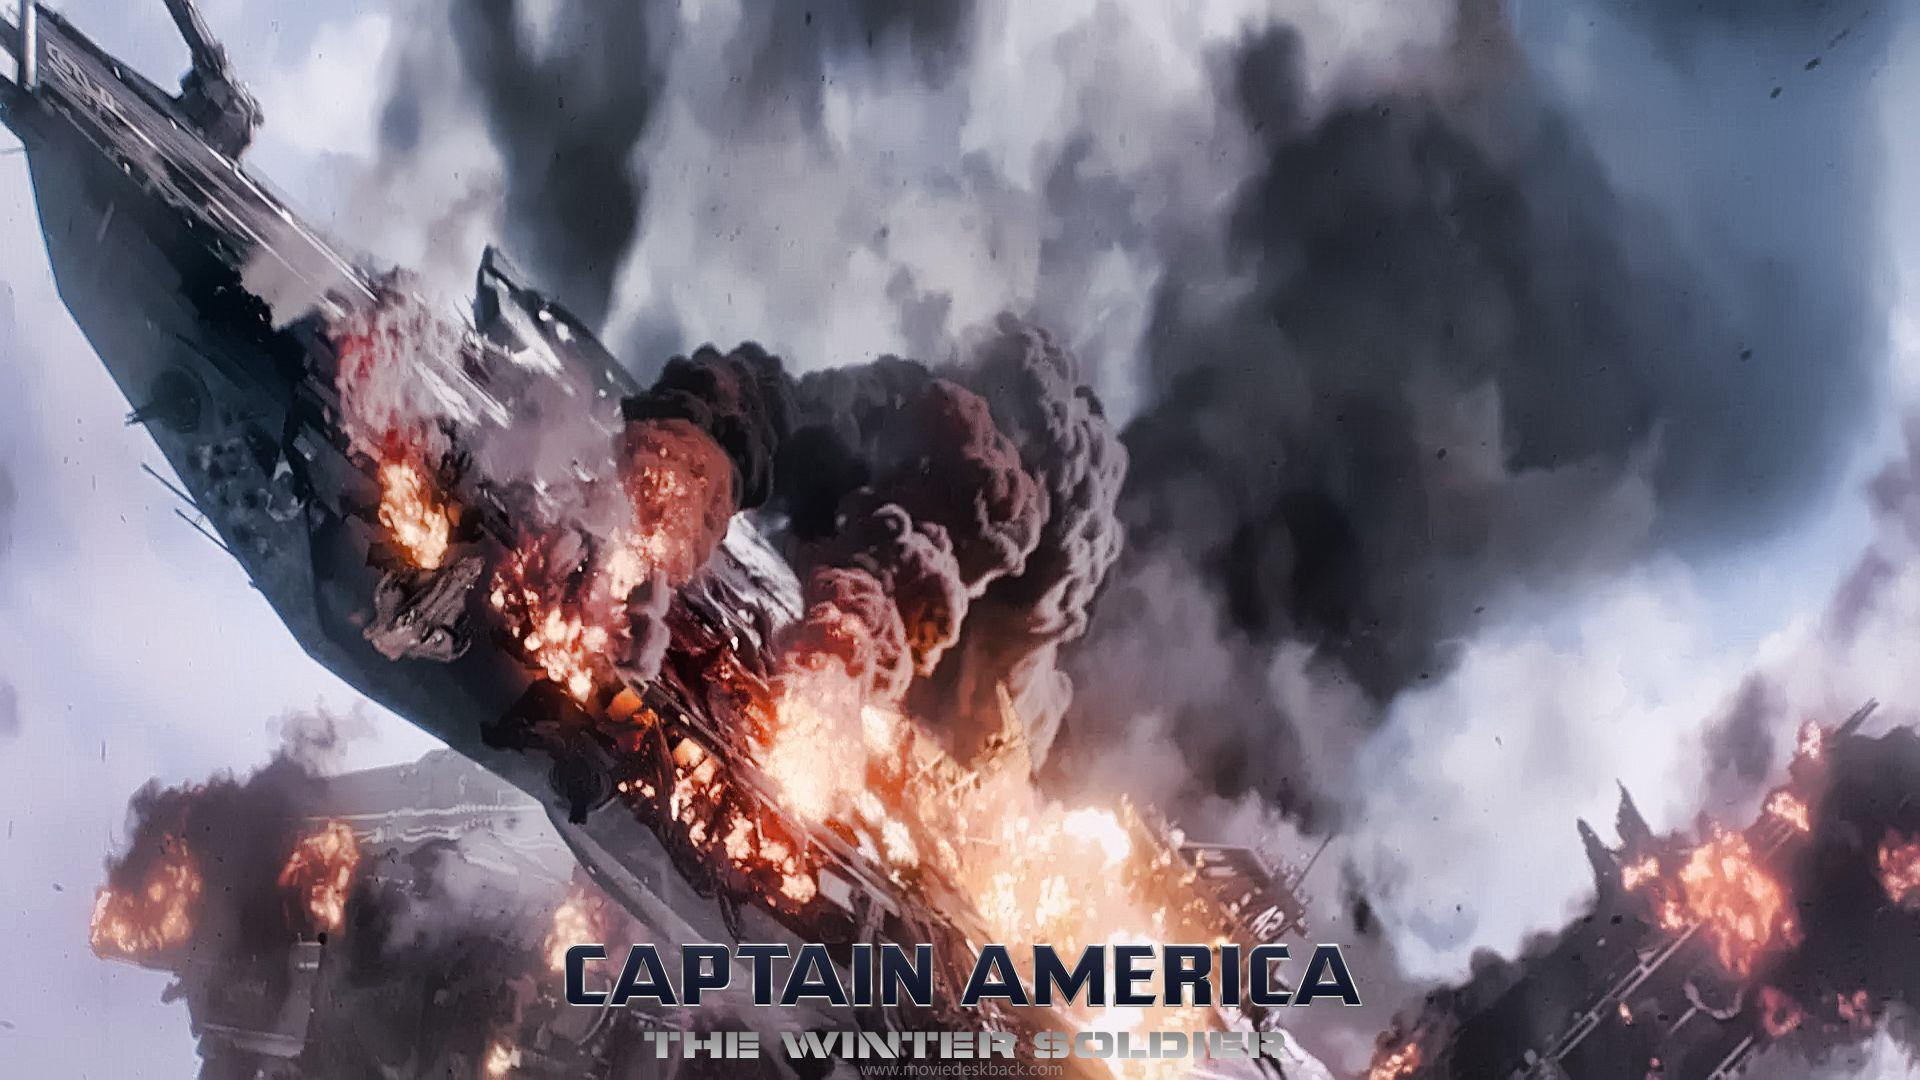 Captain America: The Winter Soldier crash wallpapers and image